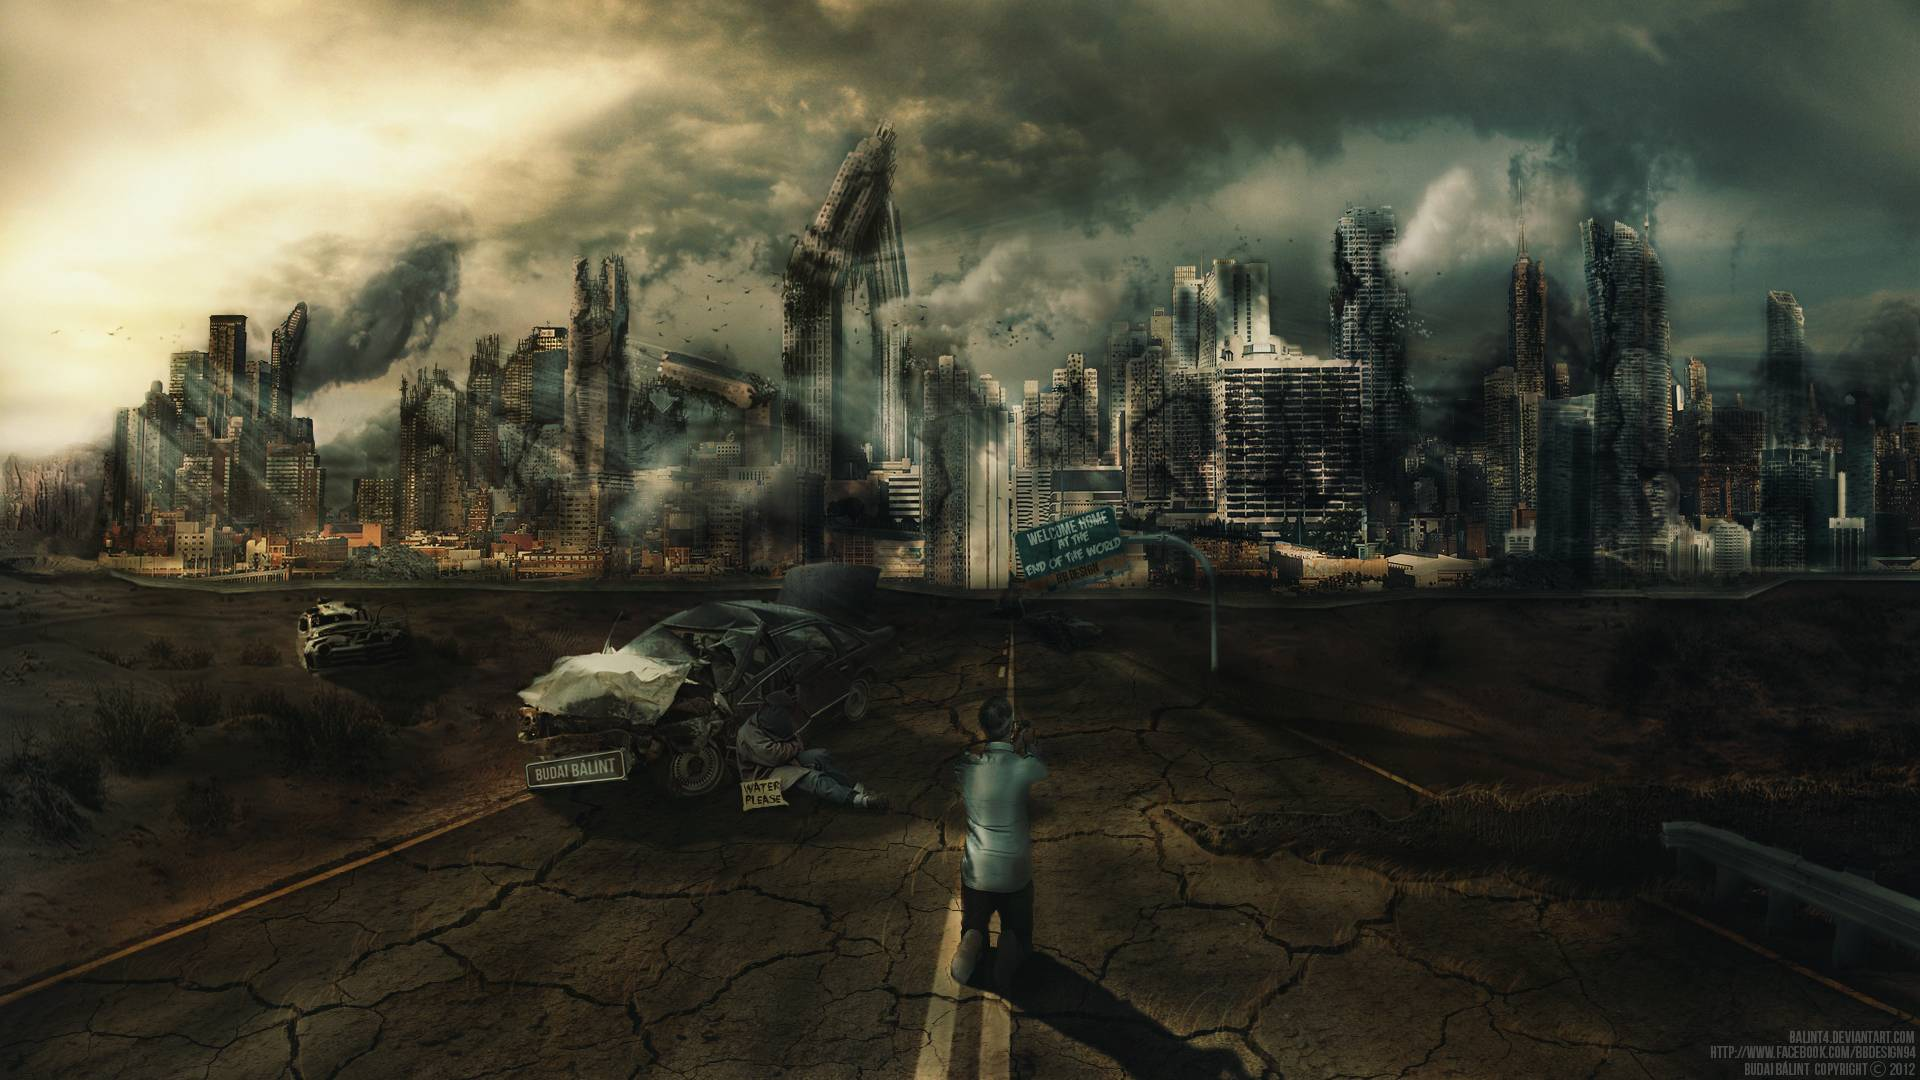 Apocalypse End Of The World Wallpaper Hd